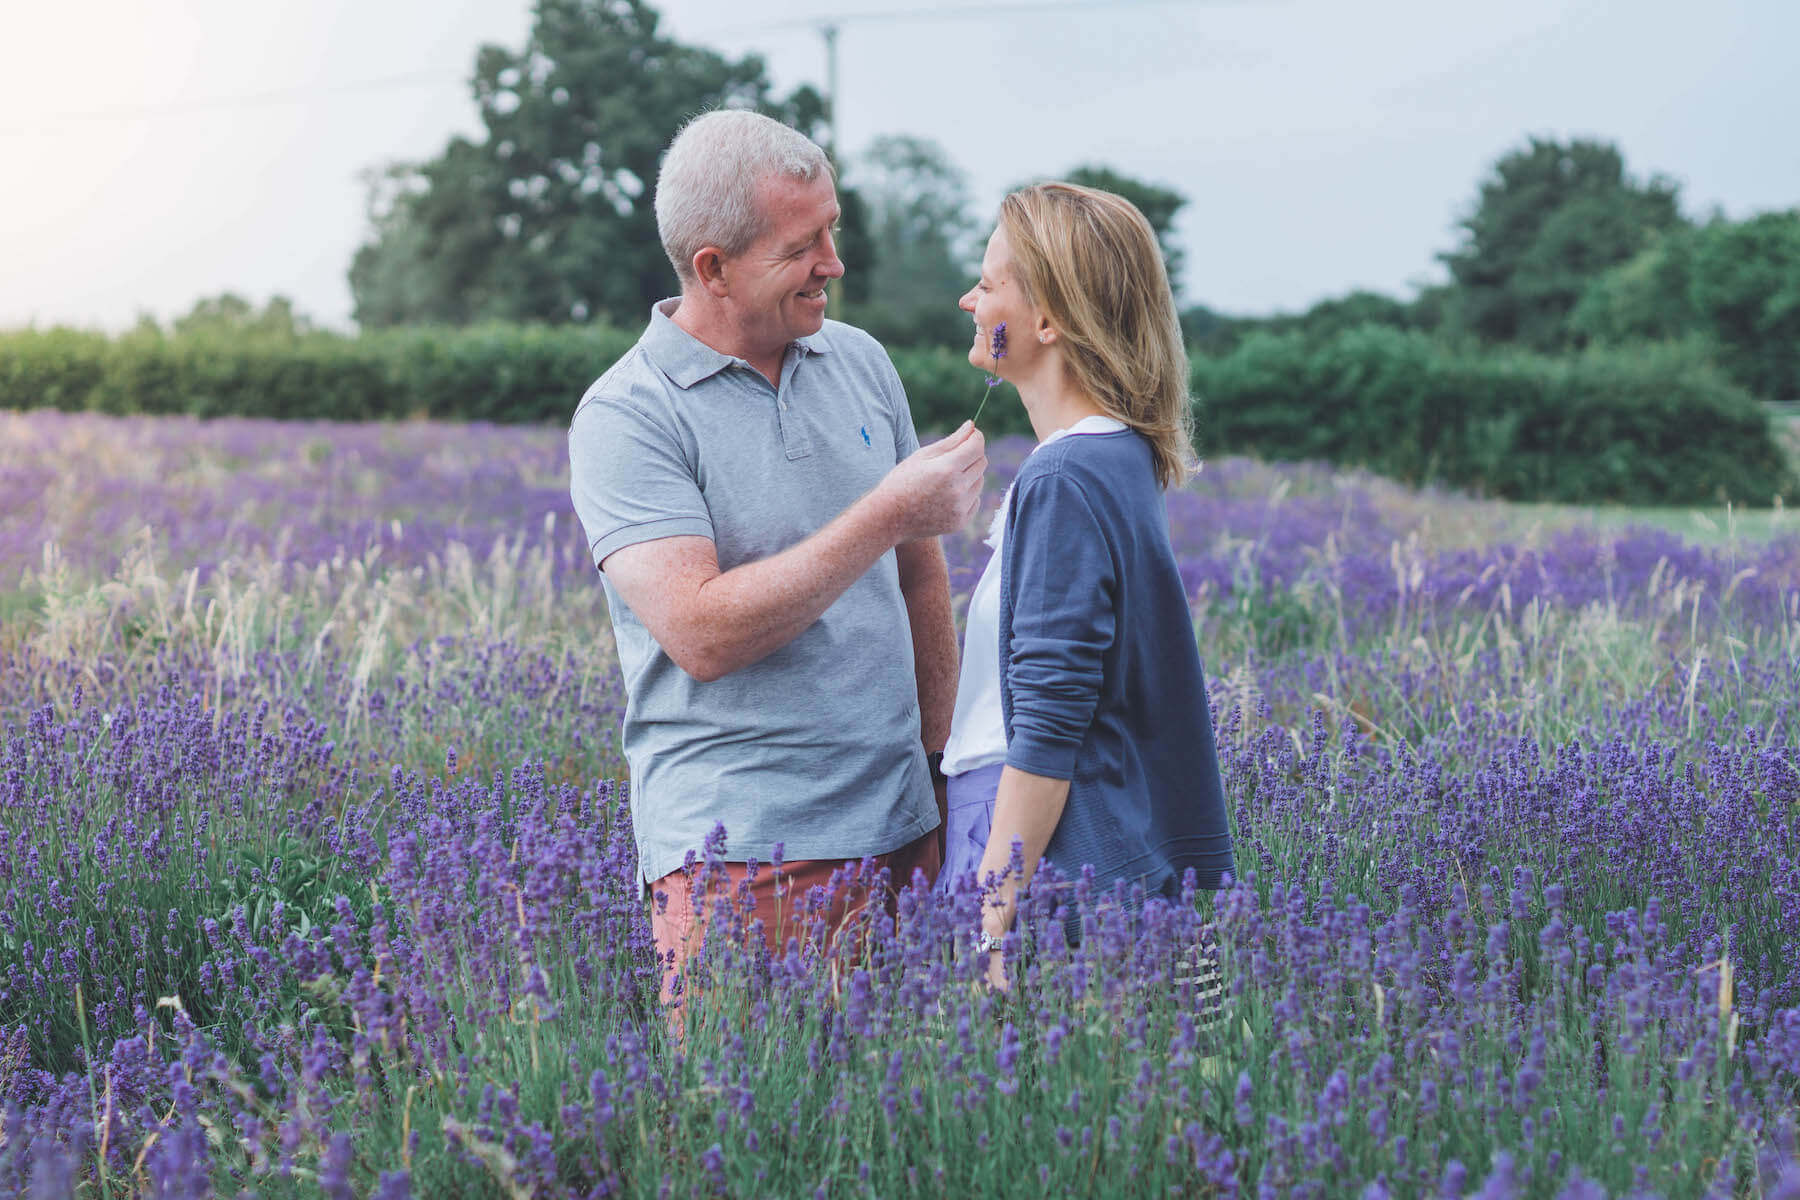 Engagement shoot at the Somerset Lavender Farm